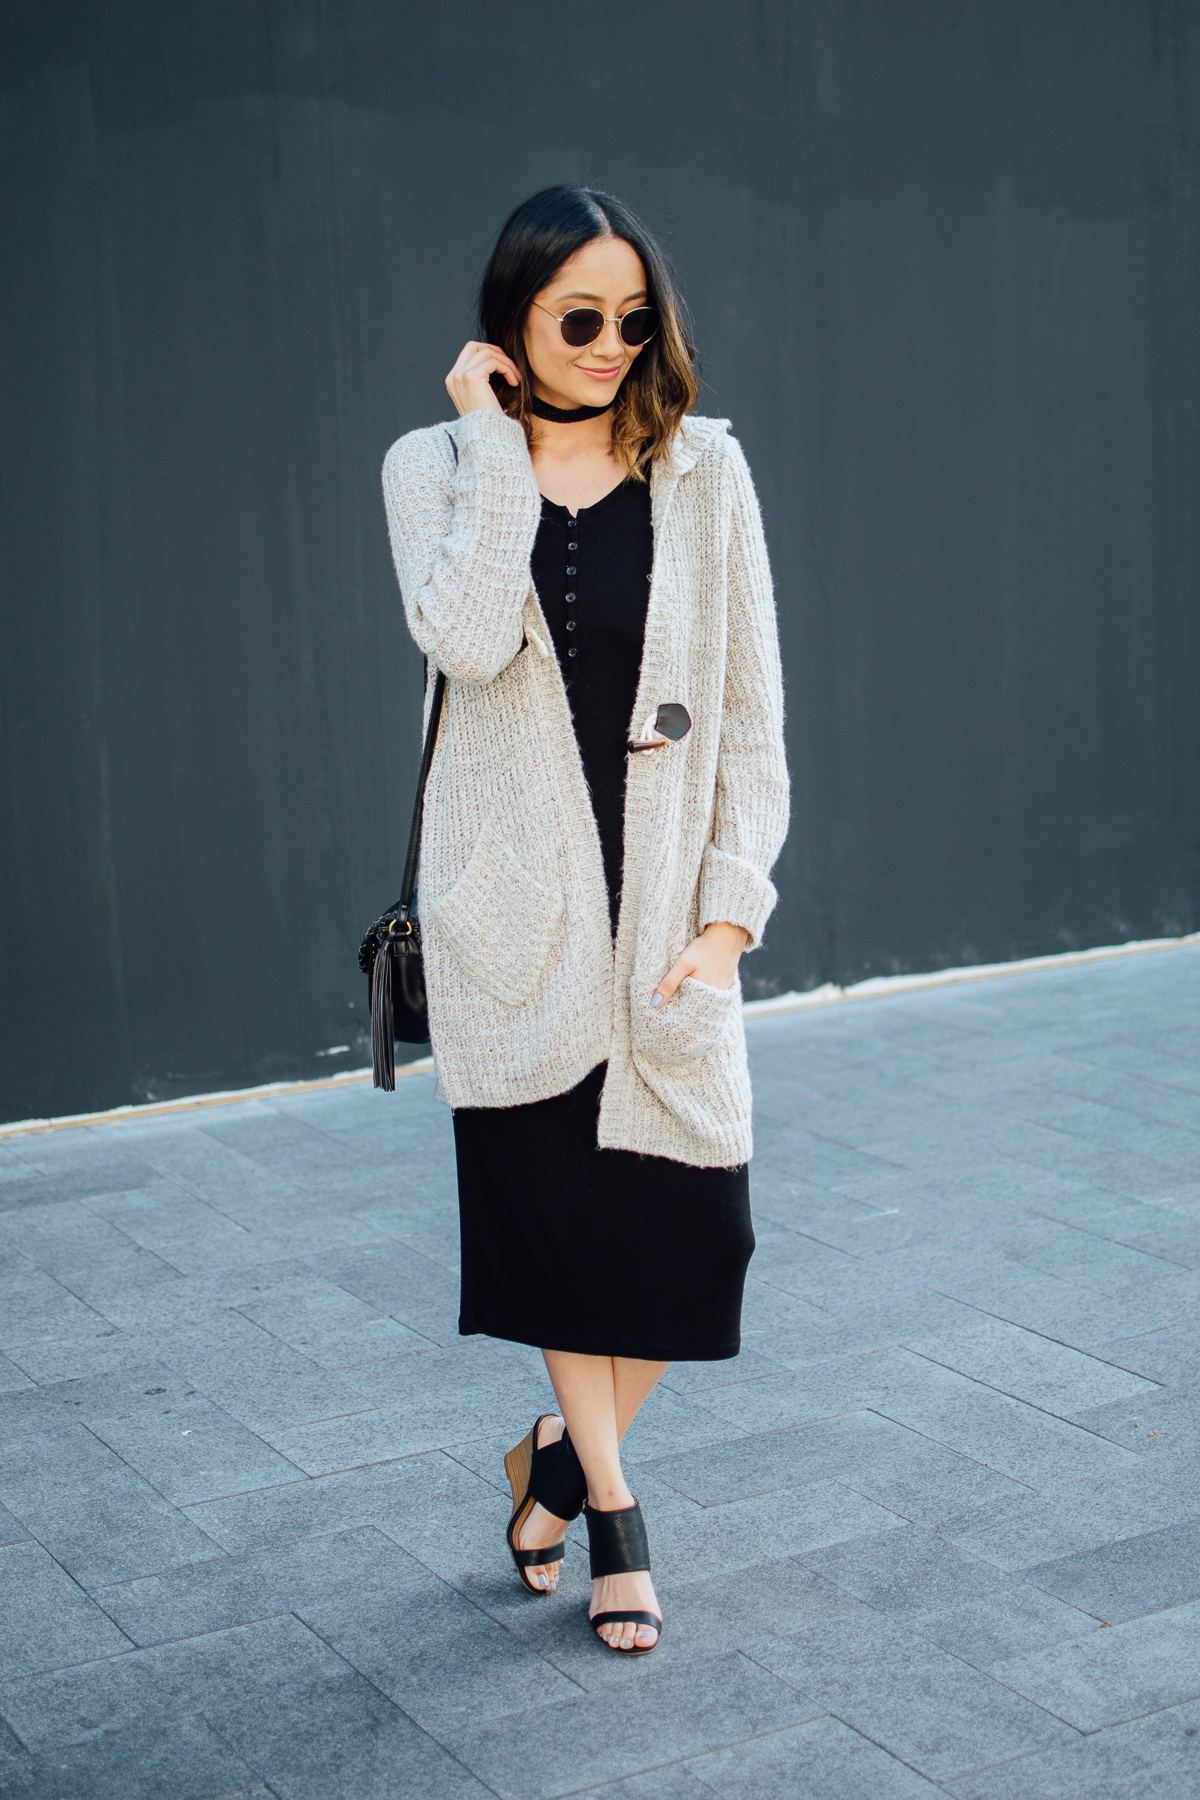 Lilly Beltran of Daily Craving wearing a fall appropriate look with a black knit dress and hooded cardigan